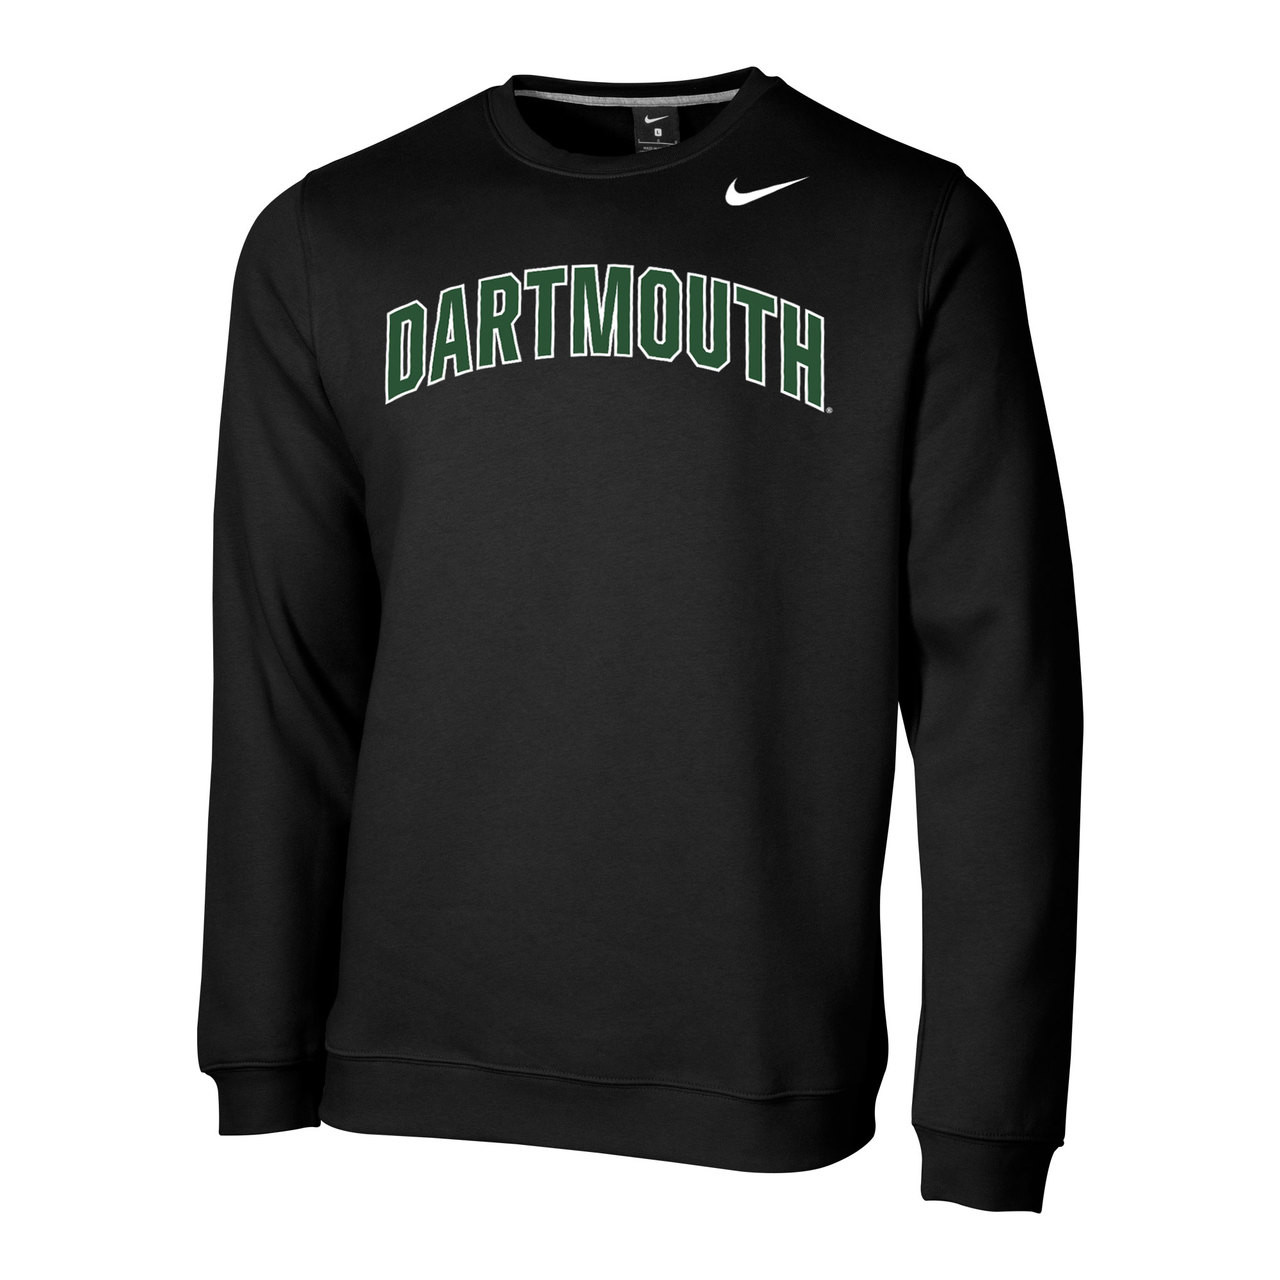 457cd8c872aa Men s Nike black crew neck sweatshirt with  Dartmouth  across chest in green  and Nike